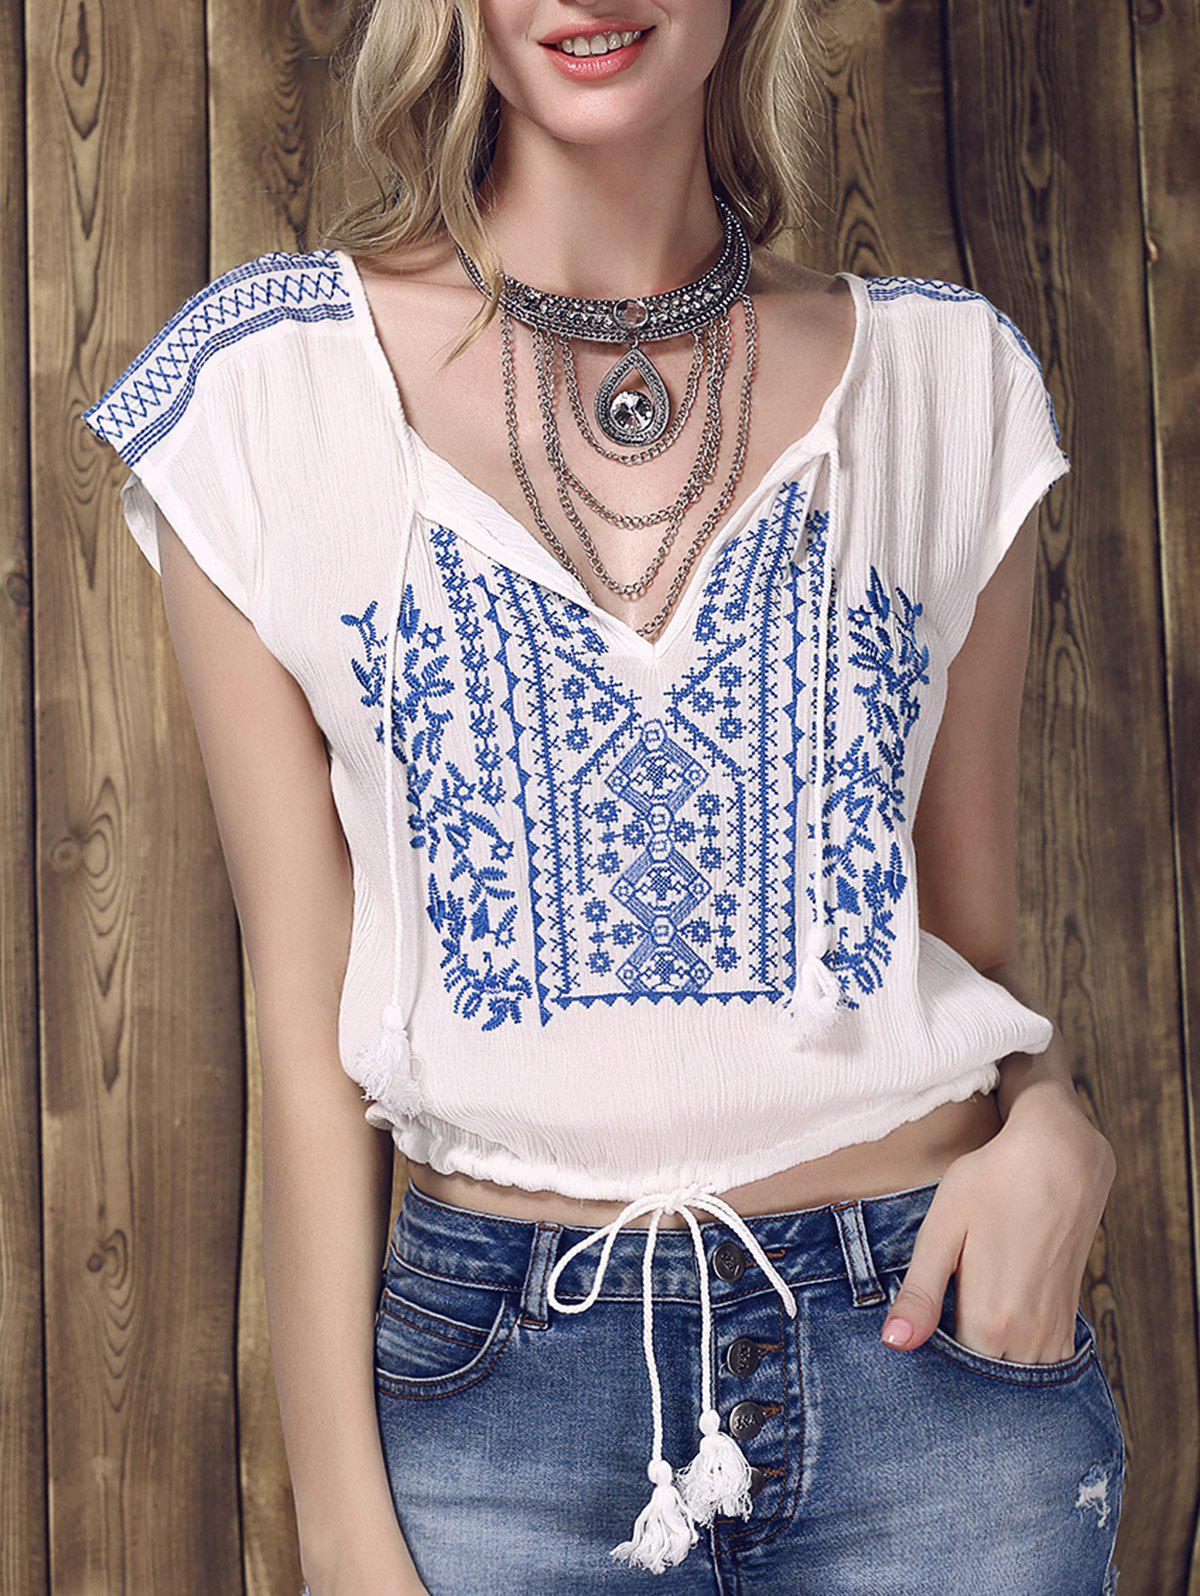 Stylish Women's V-Neck Embroidered Short Sleeve Drawsting Crop Top - L WHITE